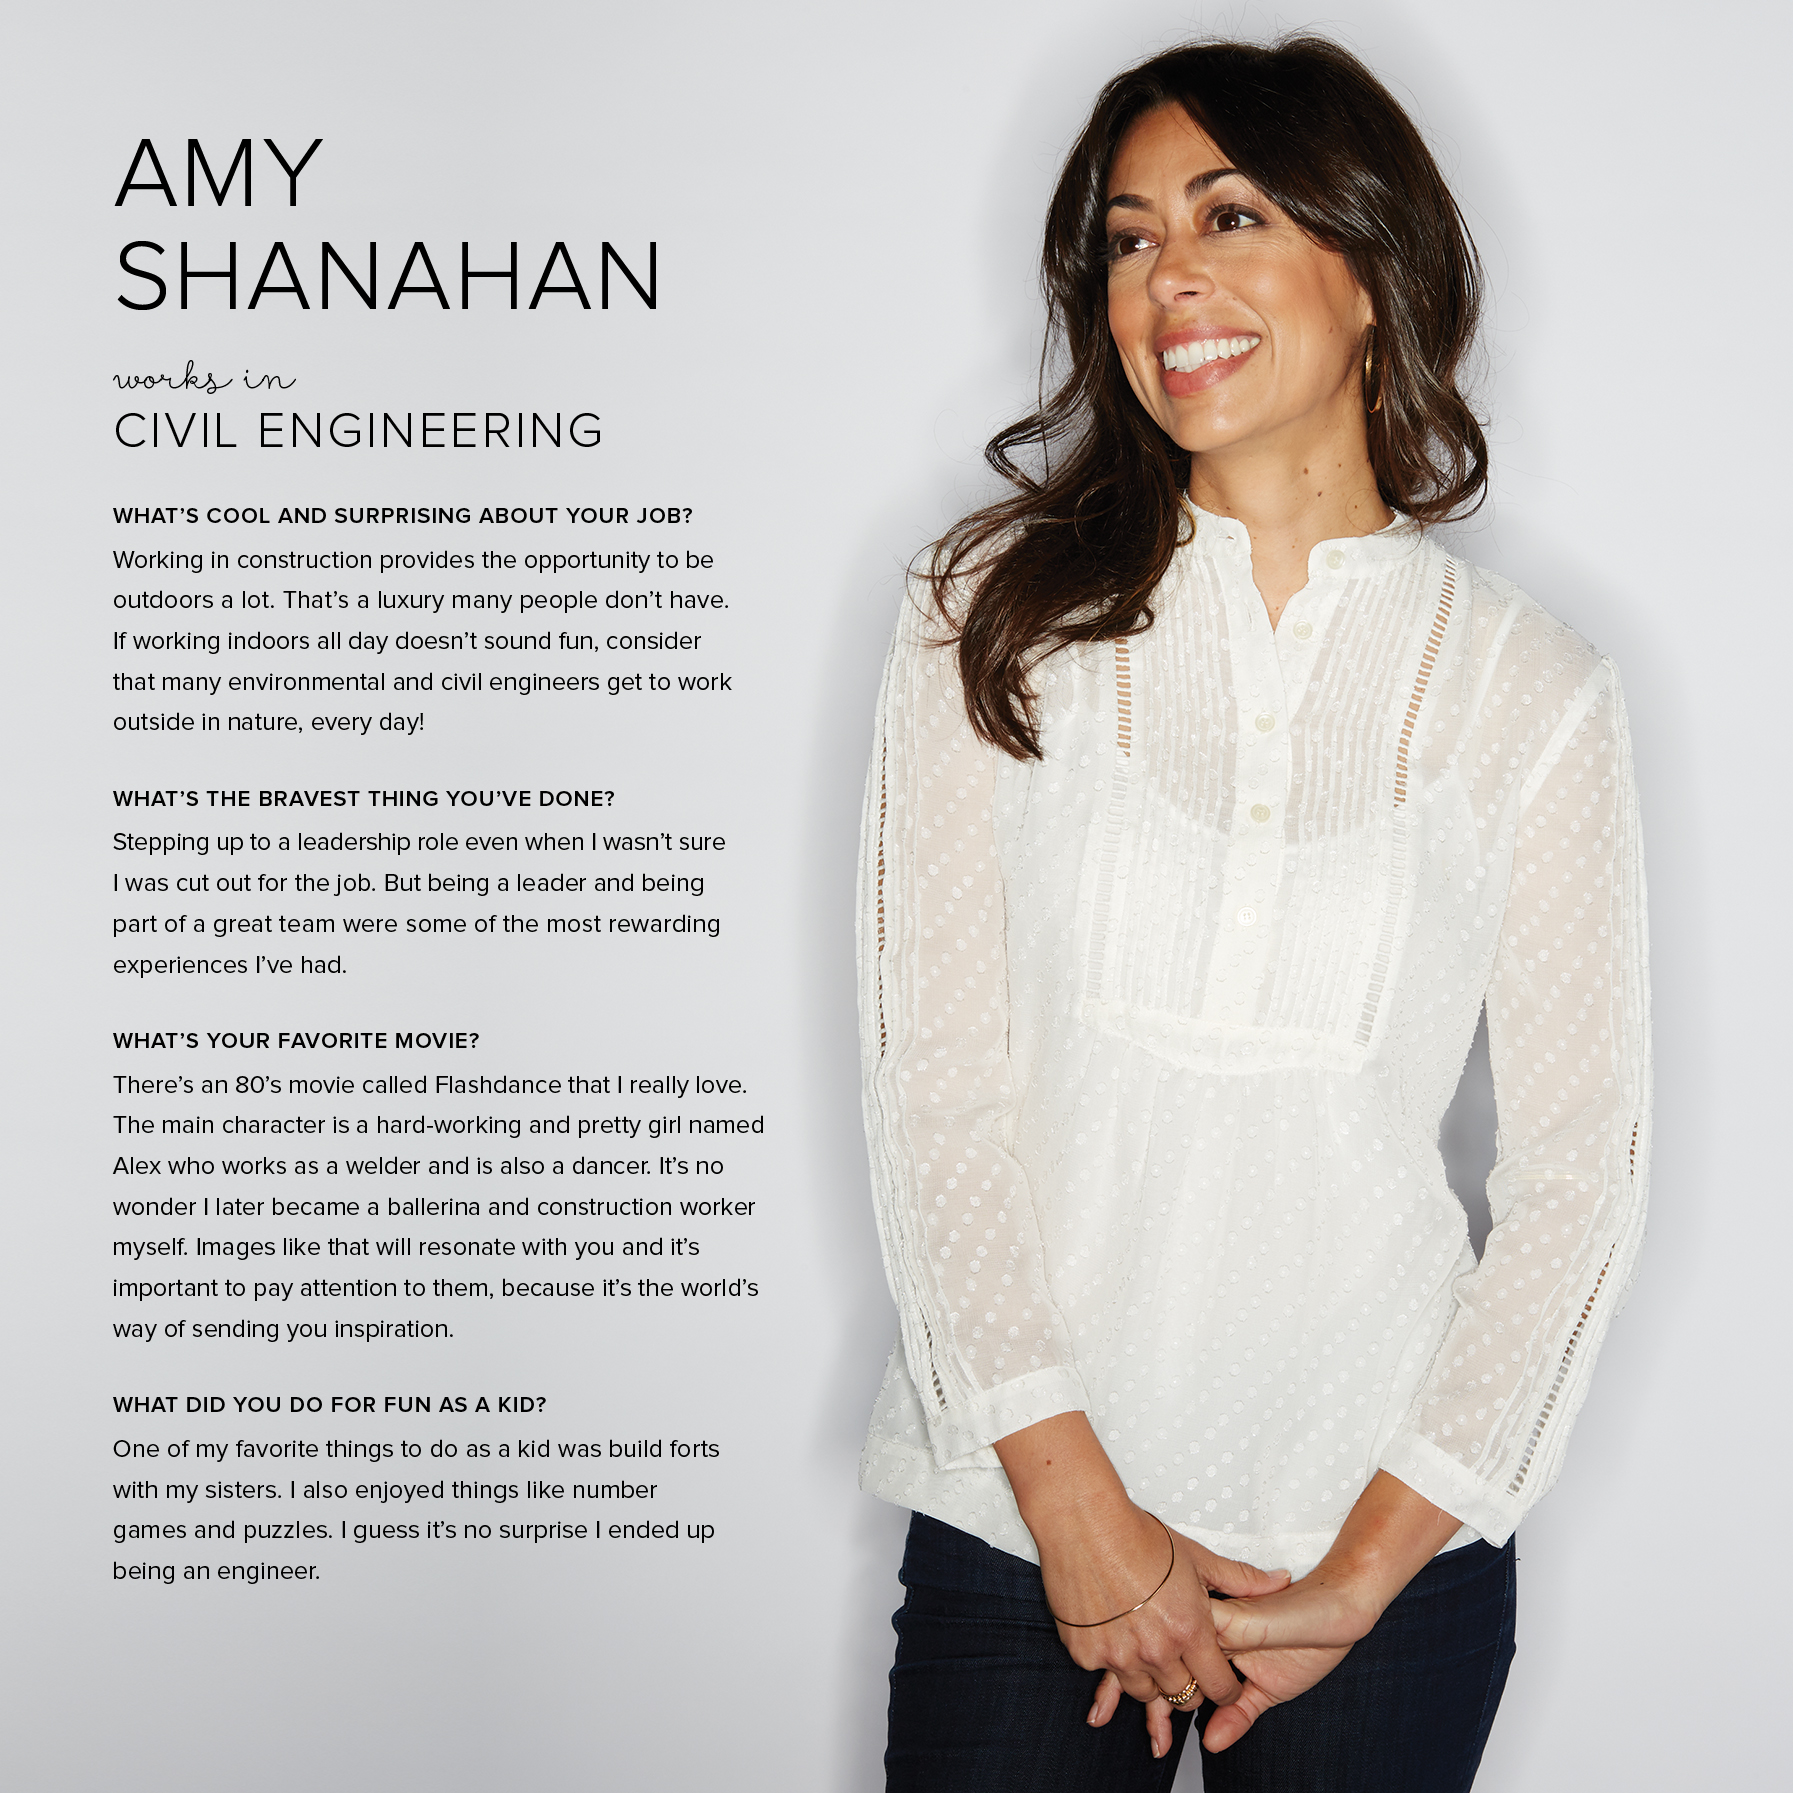 Meet Amy Shanahan - a role model that girls can relate to, profiled to educate and inspire